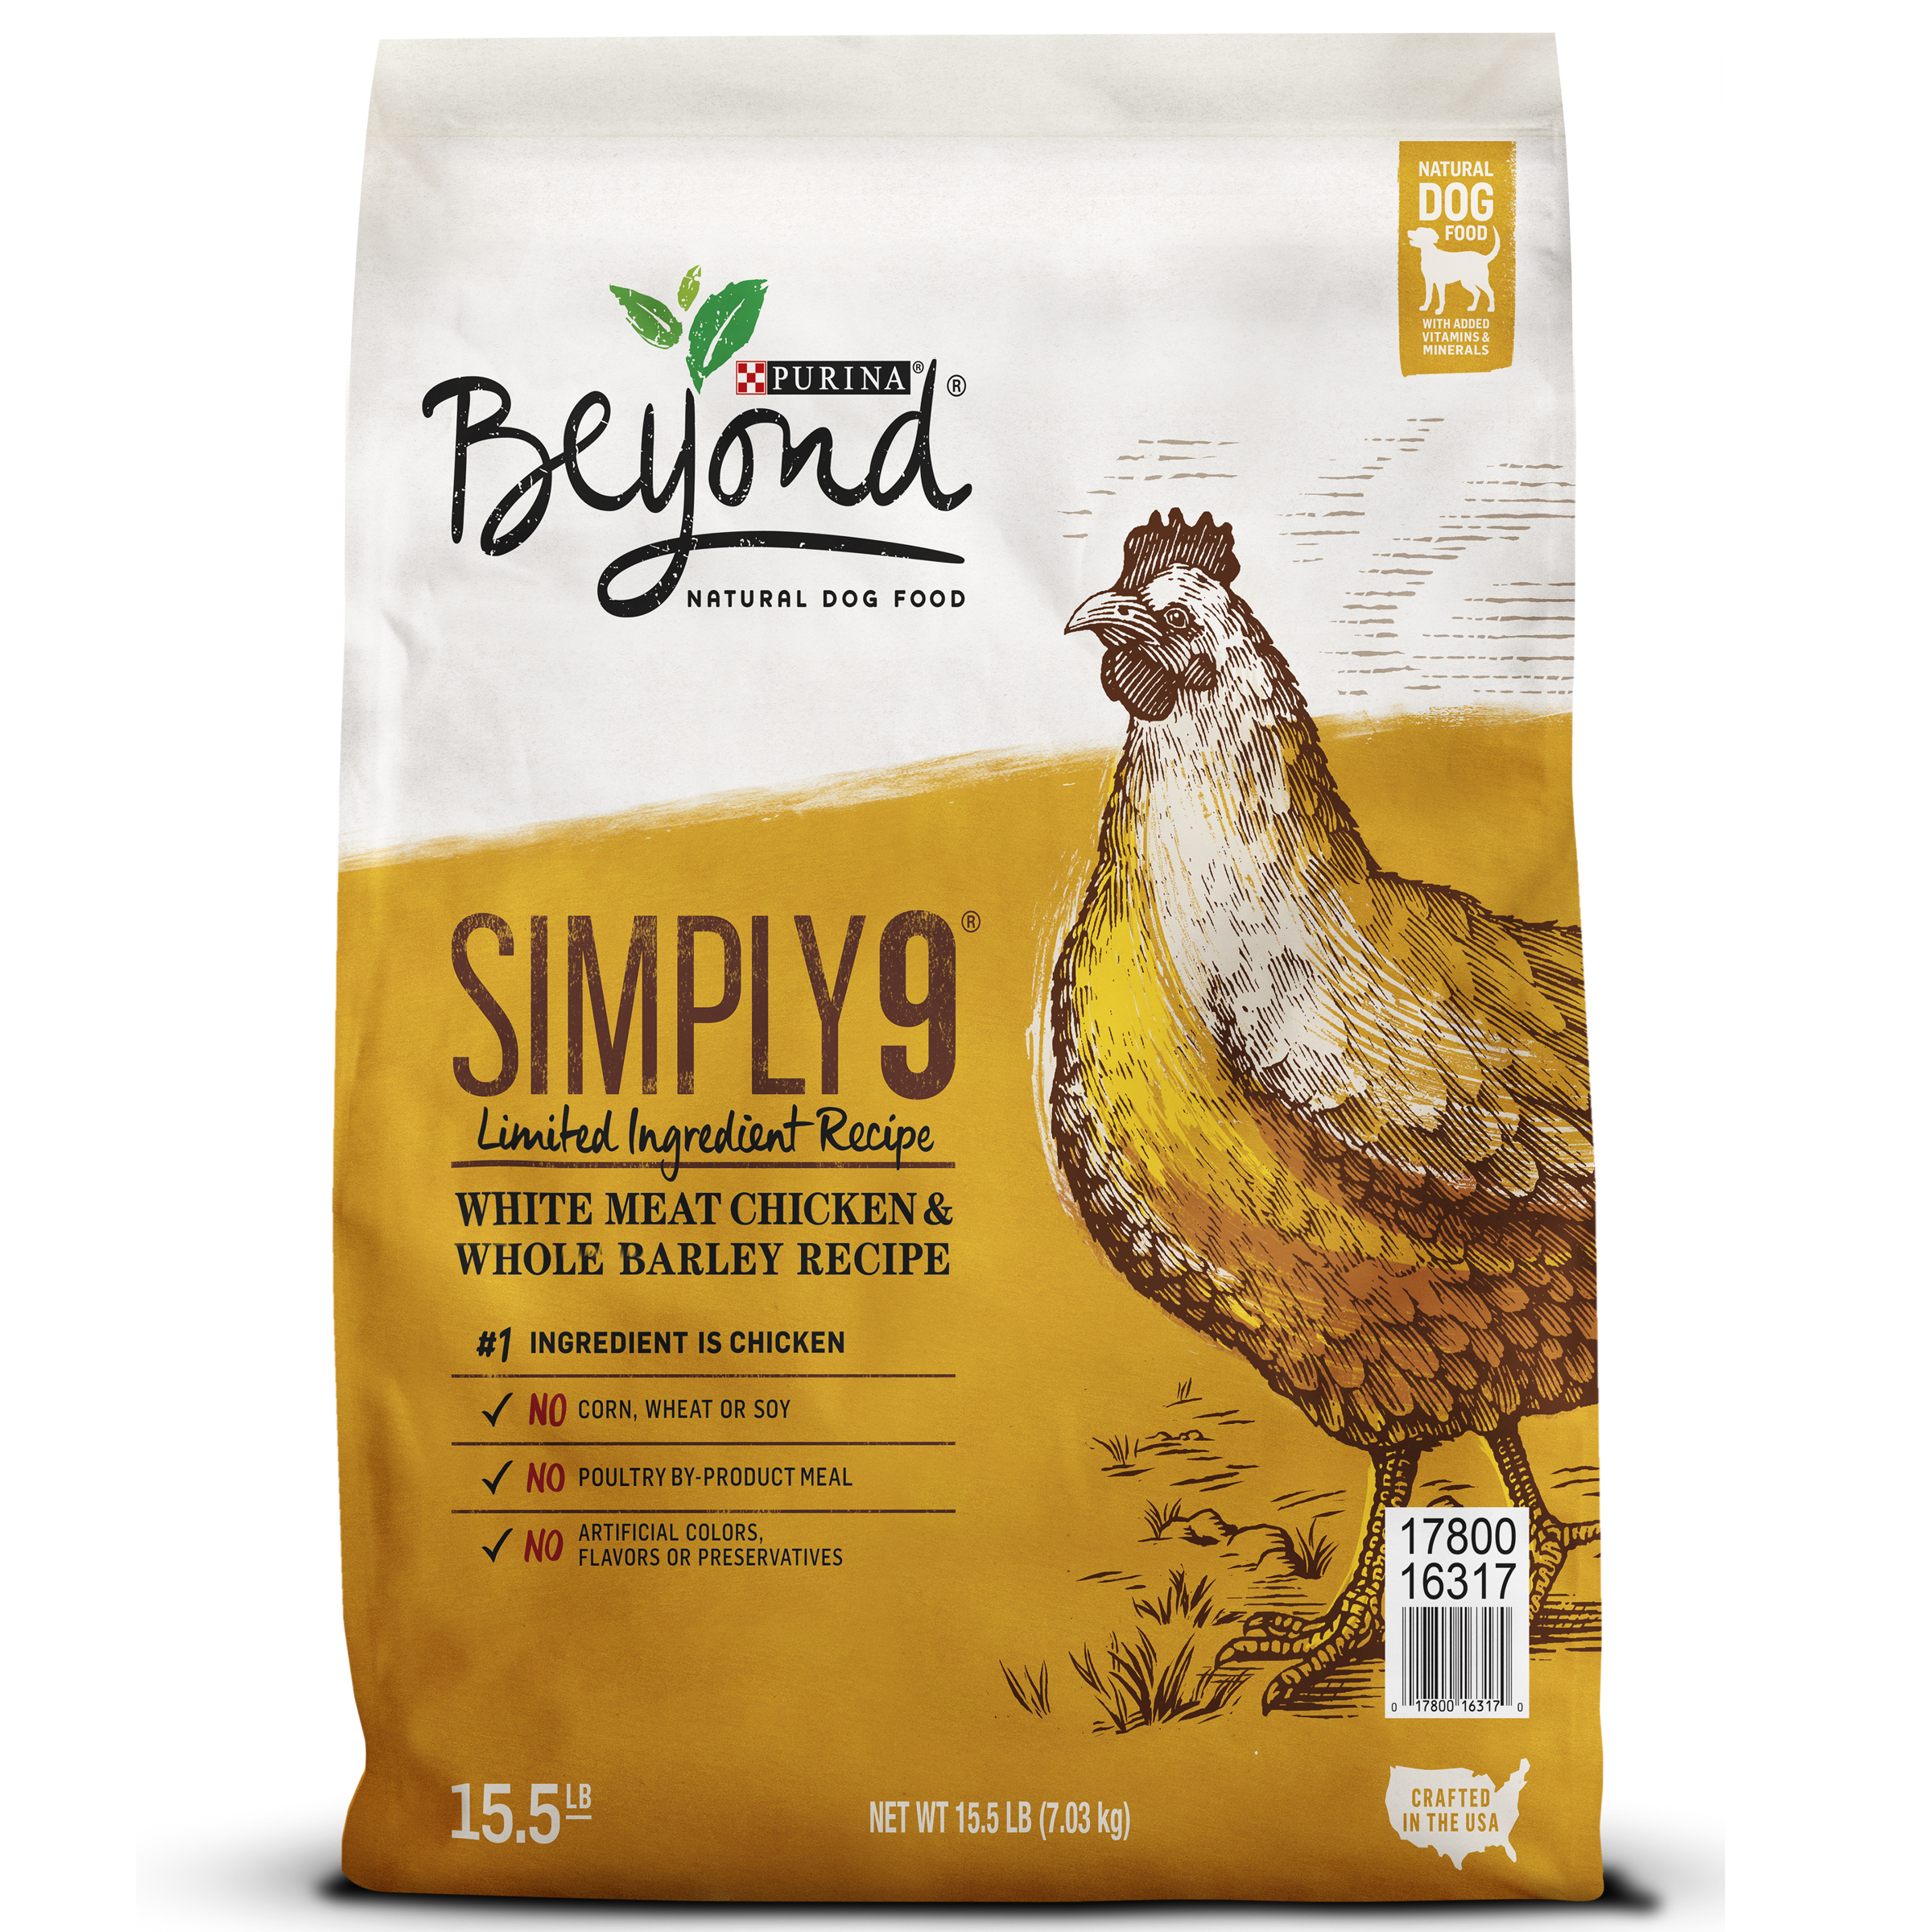 Purina Beyond Simply 9 White Meat Chicken & Whole Barley Recipe Adult Dry Dog Food - 15.5 lb. Bag